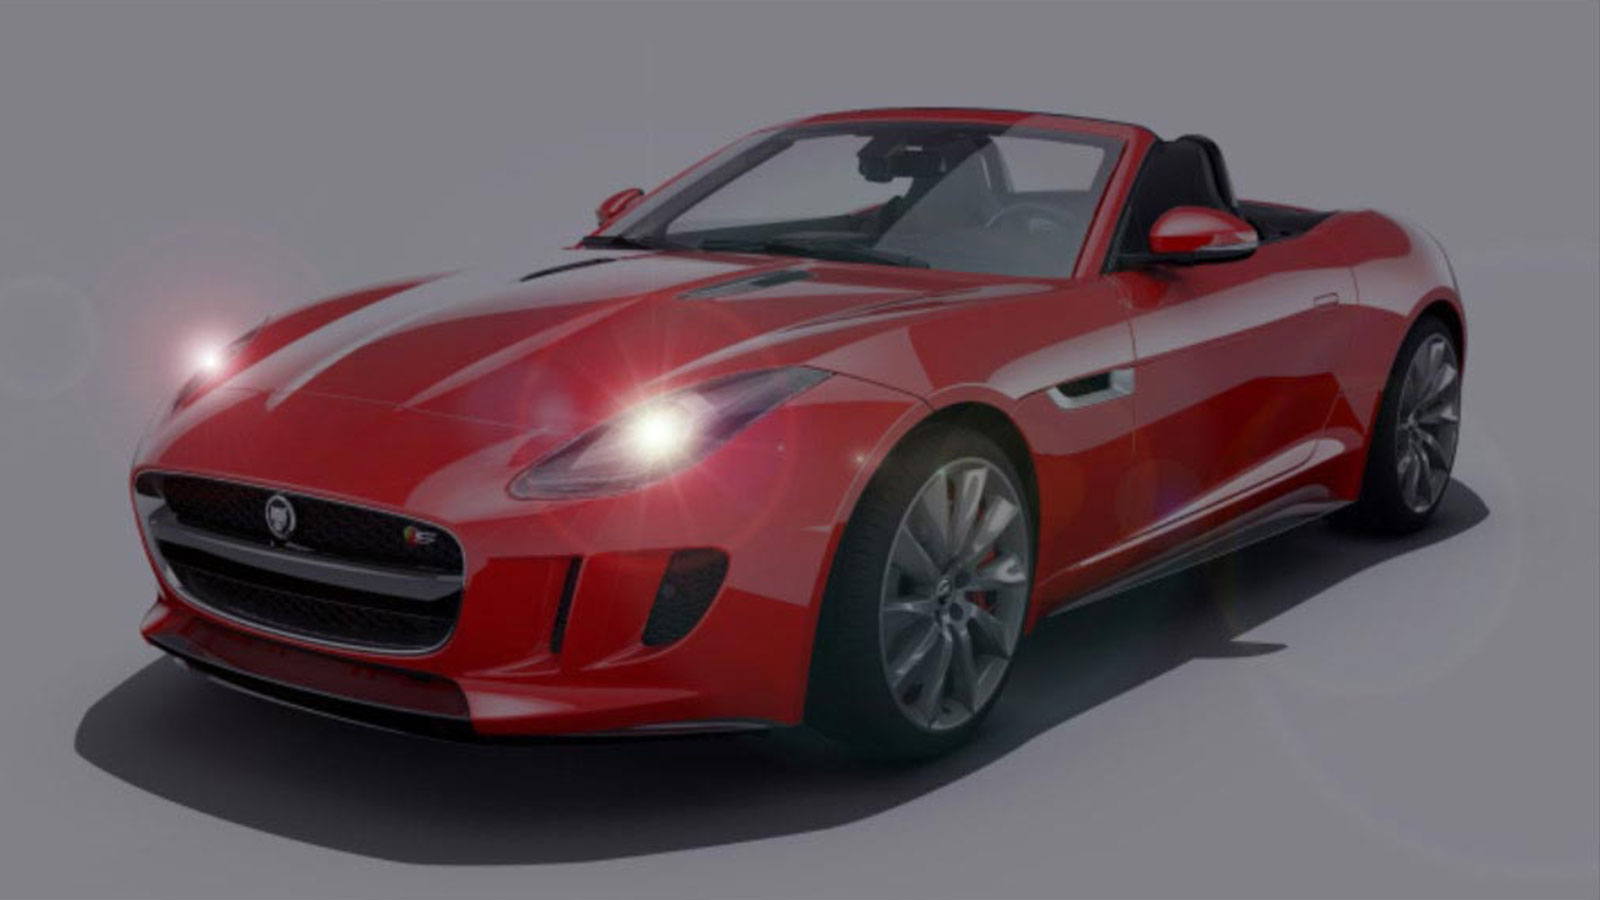 A Red Jaguar With The Headlights Turned On